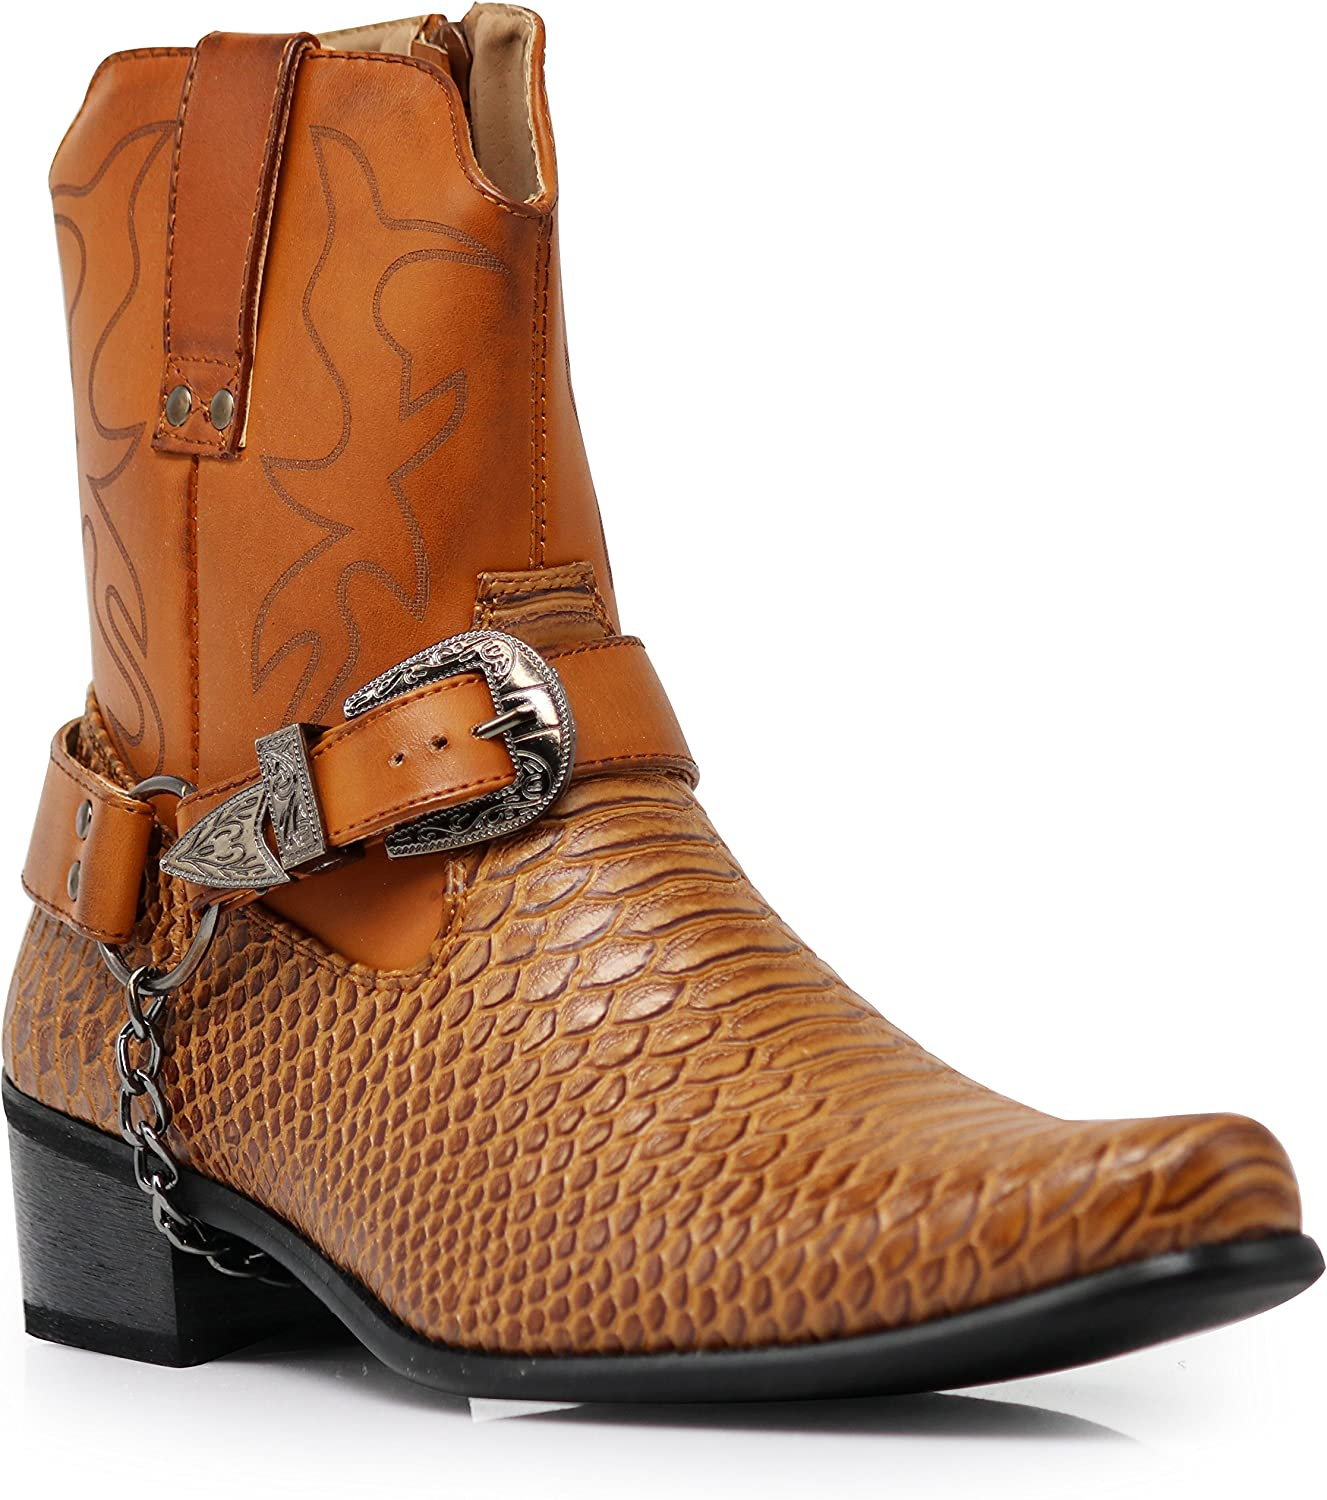 Alberto Fellini Men's Crocodile Prints Western Boots with Side Zipper, Belt Buckle and Metal Chain (Brown, 7.5)